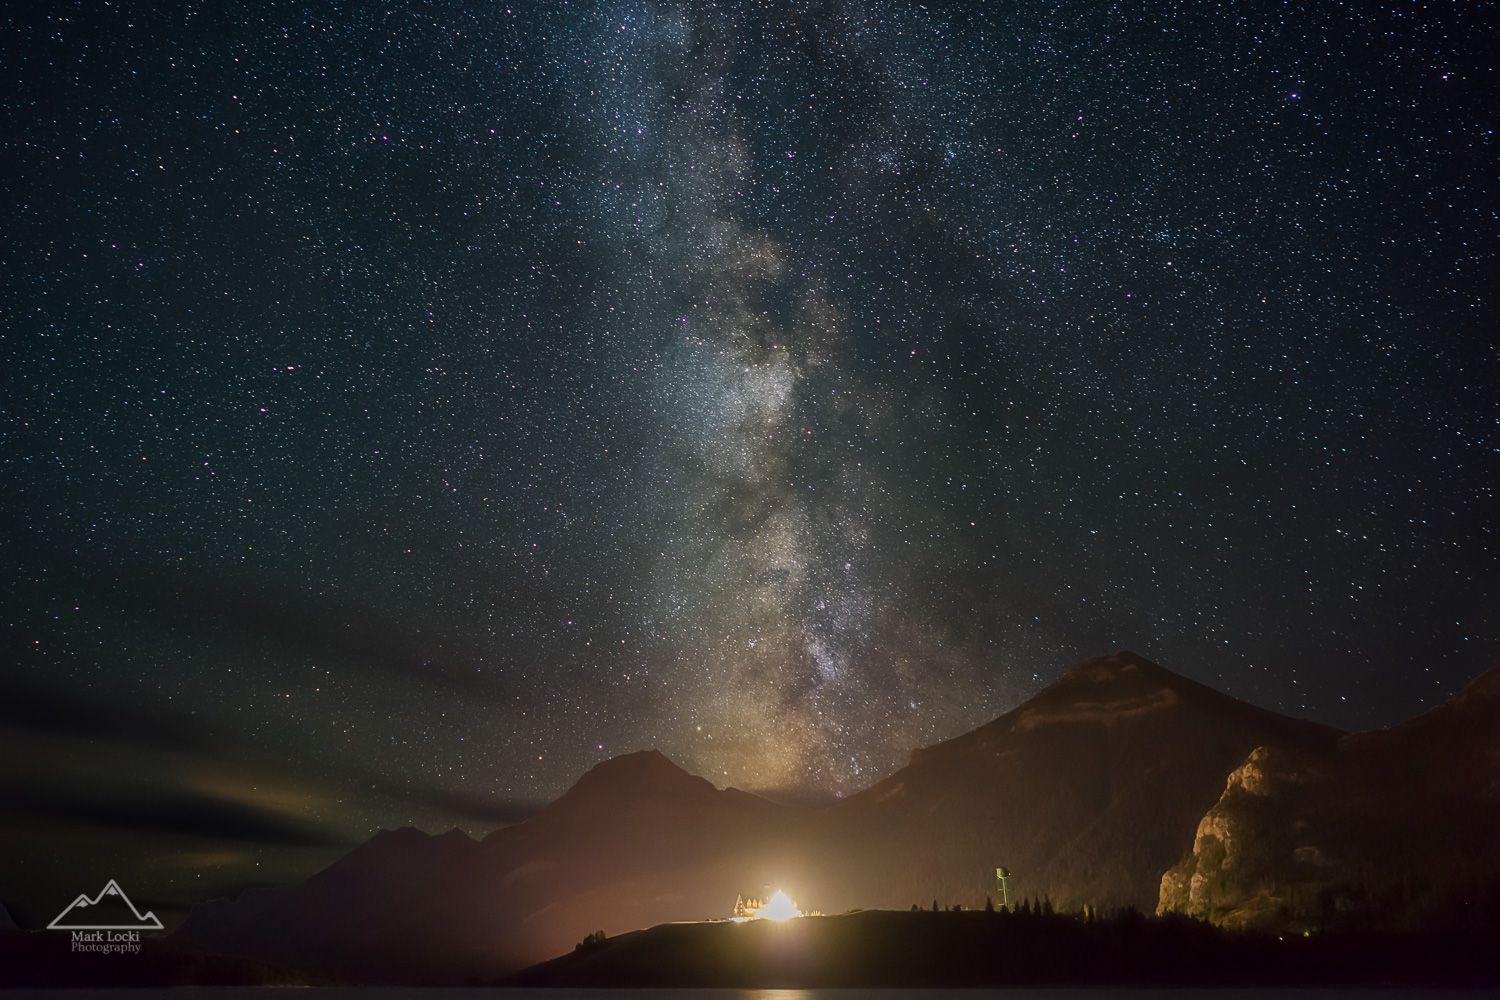 Waterton Wonder: The Milky Way branching out above the Prince of Wales Hotel in Waterton Lakes National Park. A few weeks after this picture the Kenow wildfire ripped through Waterton overnight, which will substantially change the landscape in the coming years.